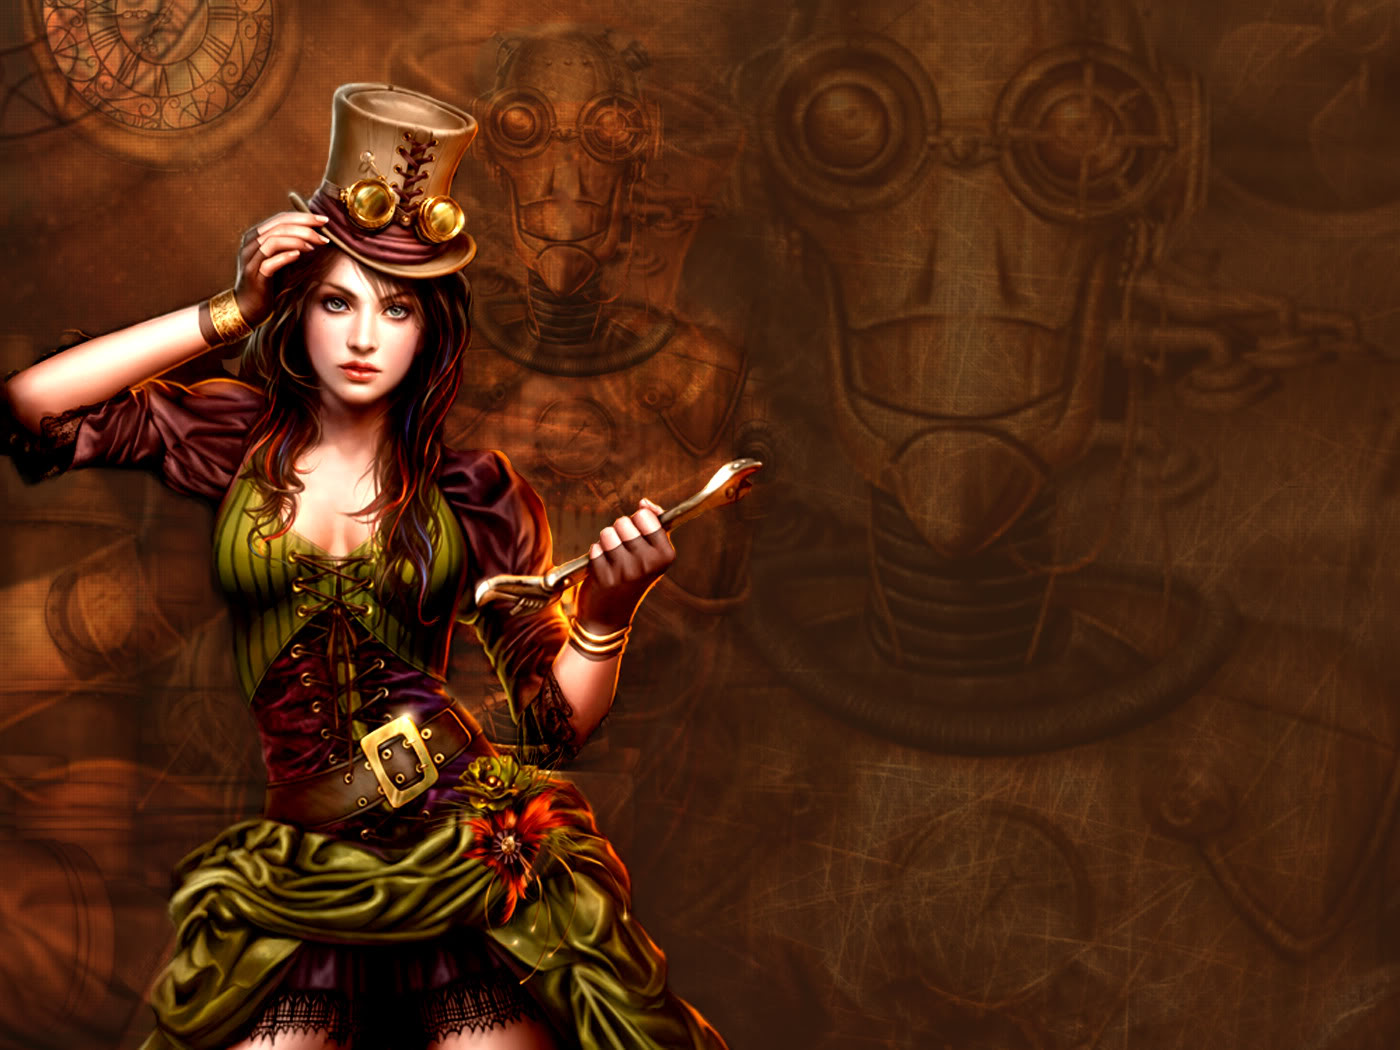 steam punk anime steampunk - photo #34